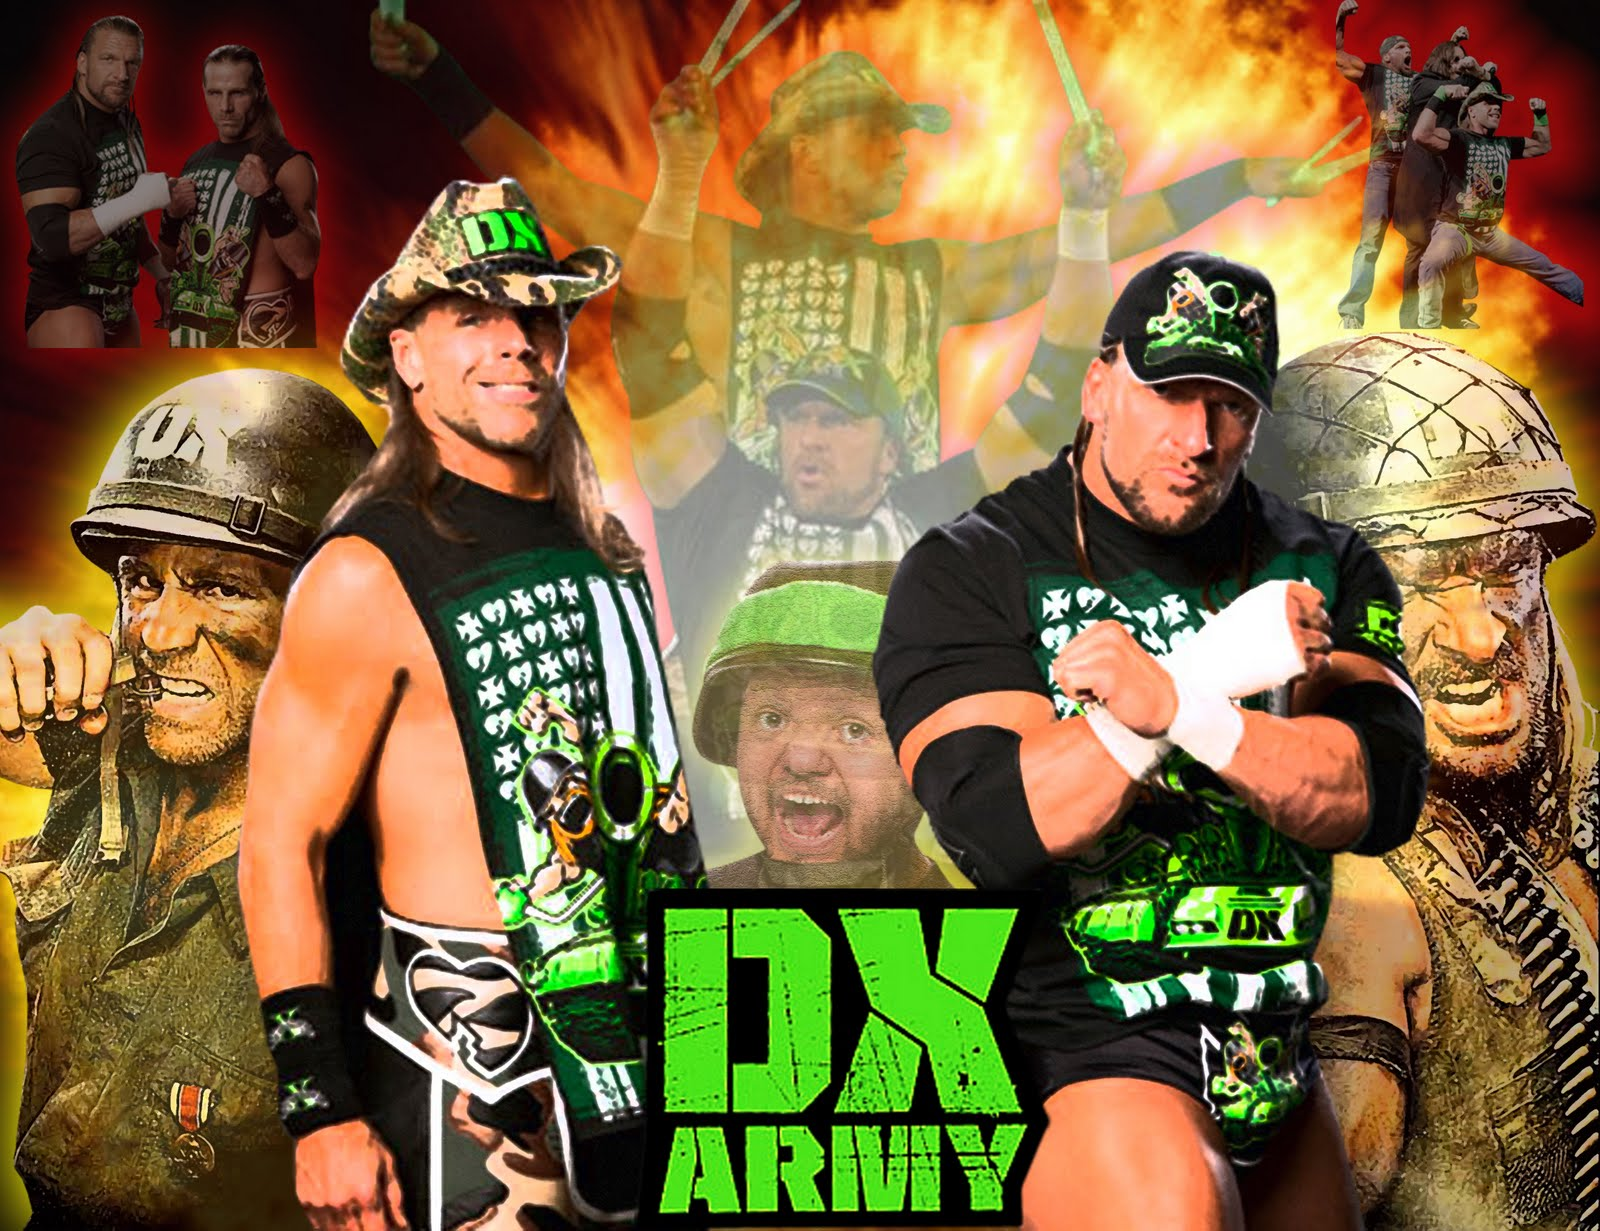 Batista Hd Wallpapers 2014 Wwe Wallpapers Dx Dx Wallpapers Wwe Dx Dx Wwf Dx